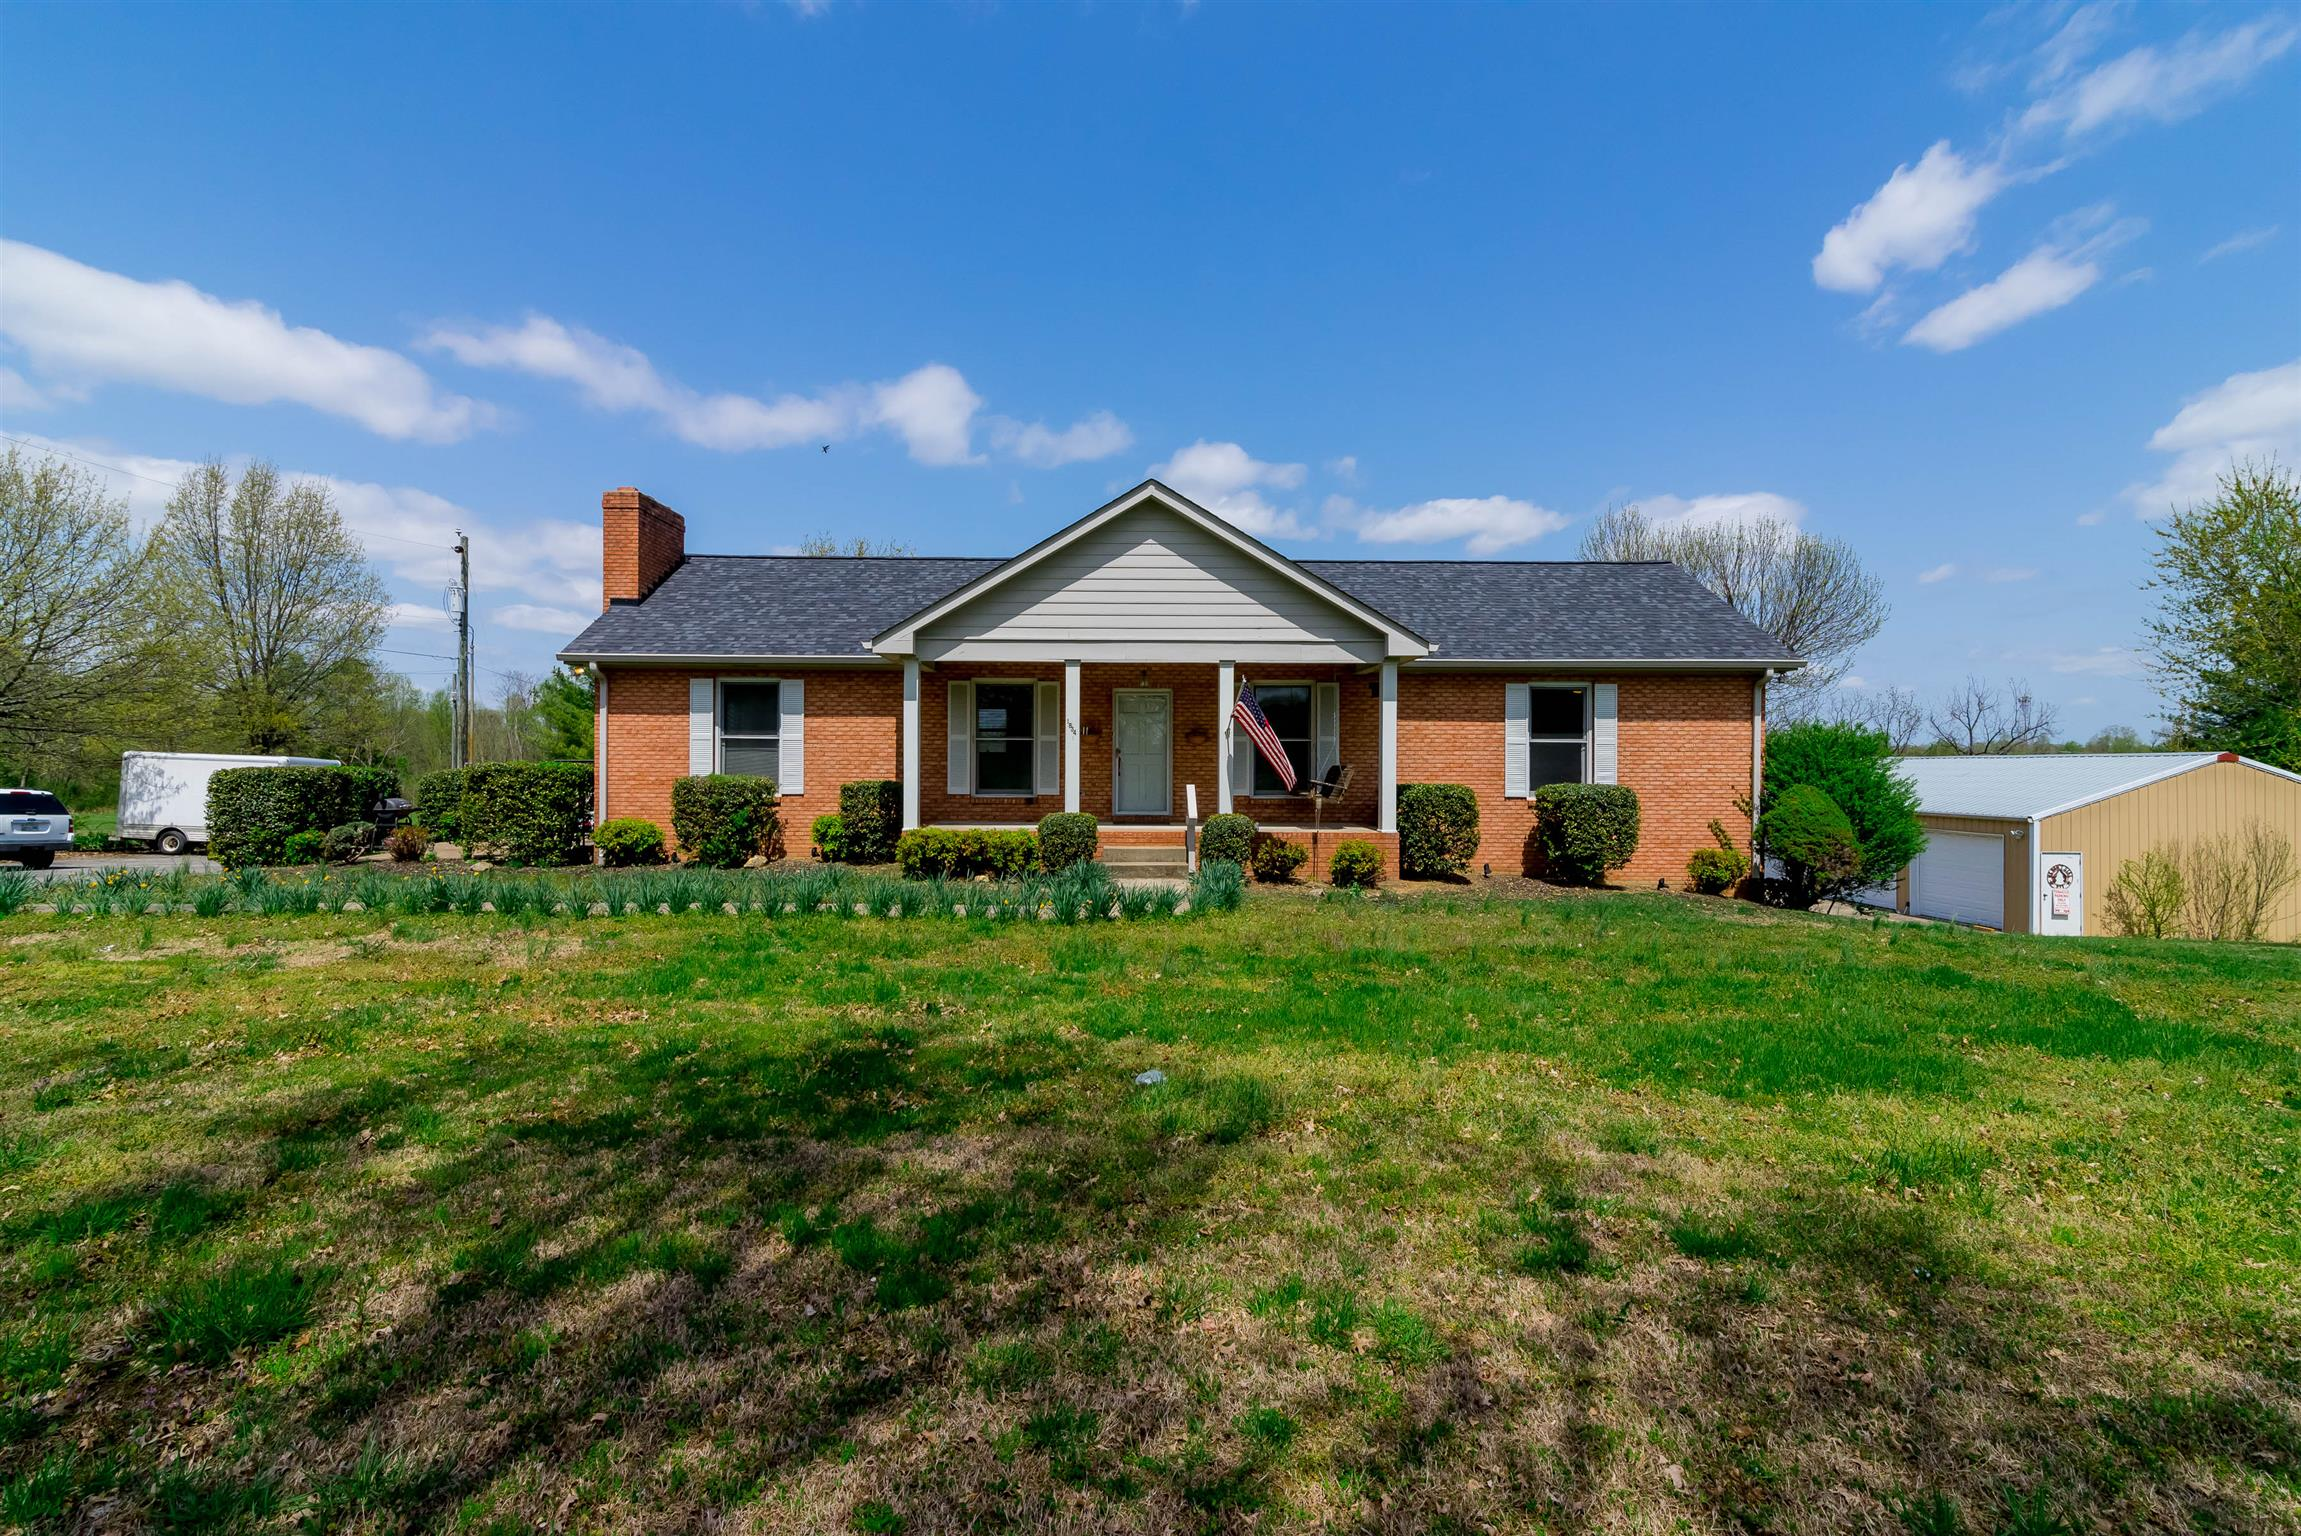 1834 Union Hill Rd, Goodlettsville, Tennessee